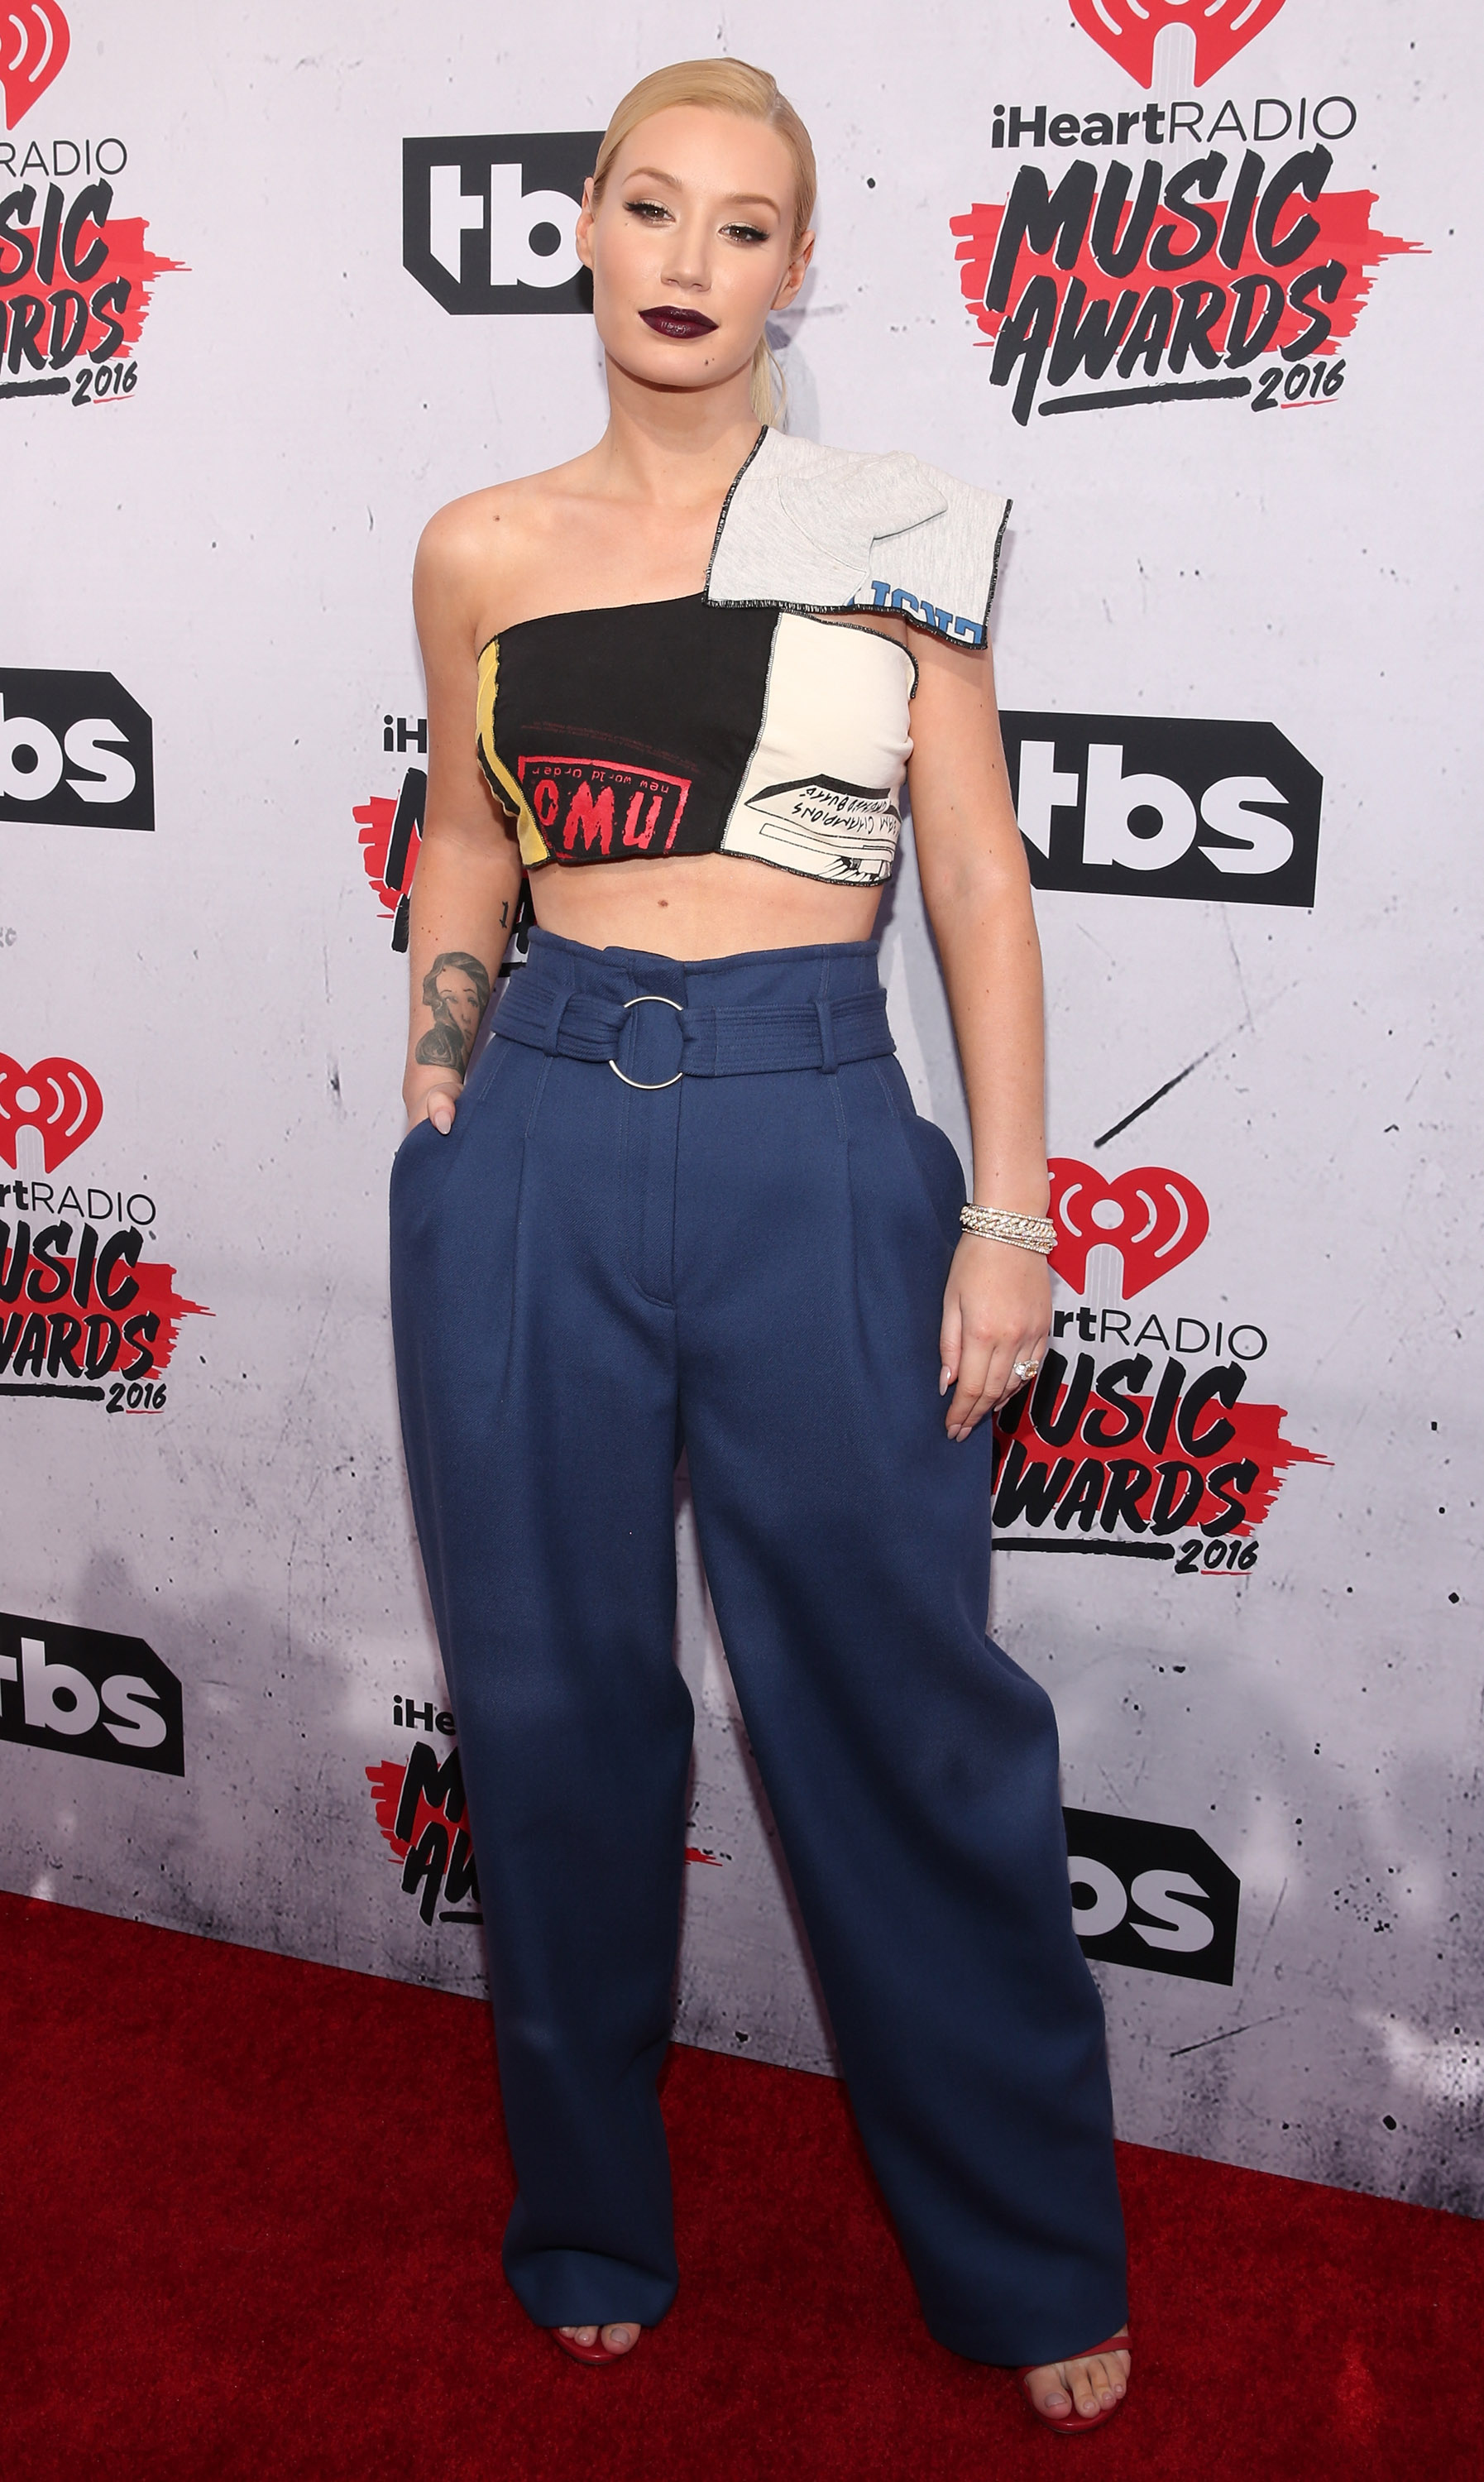 Iggy Azalea slams media for IRS story